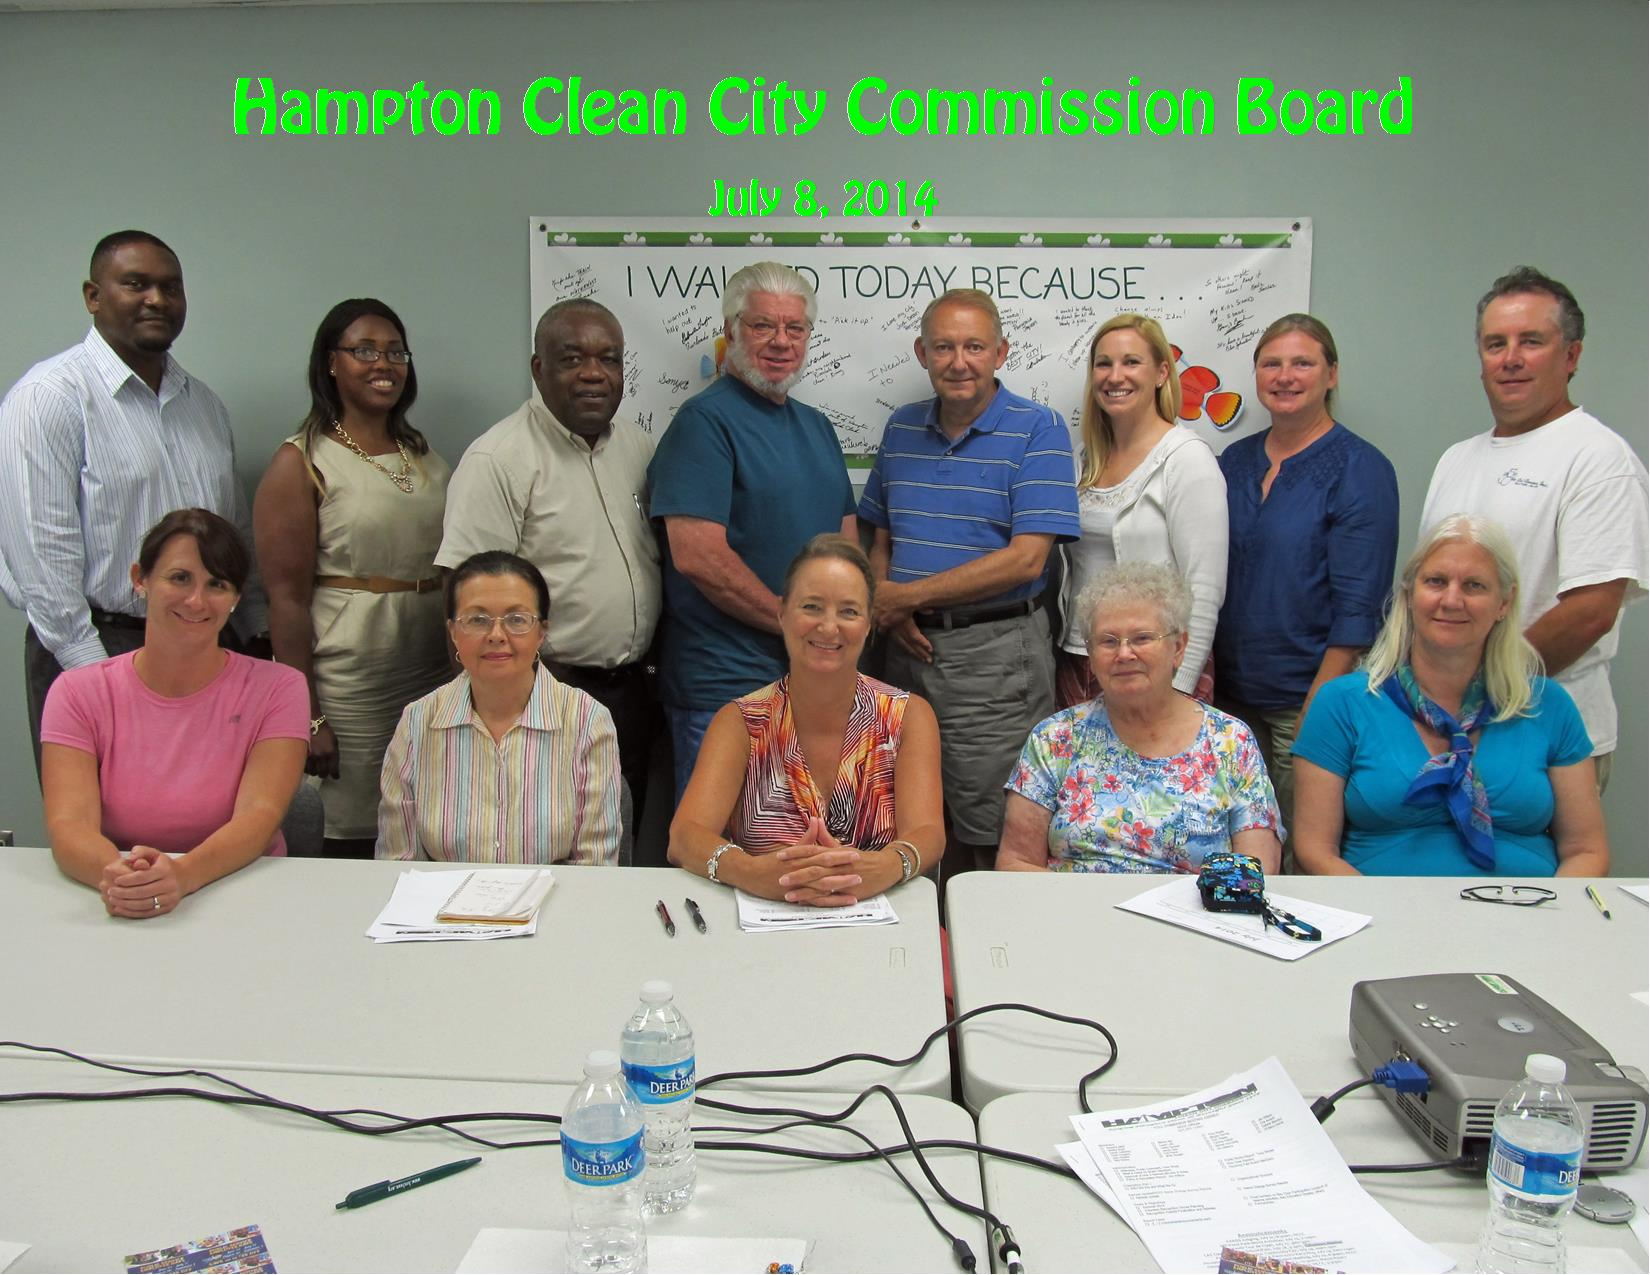 7-8-14 Commission Meeting